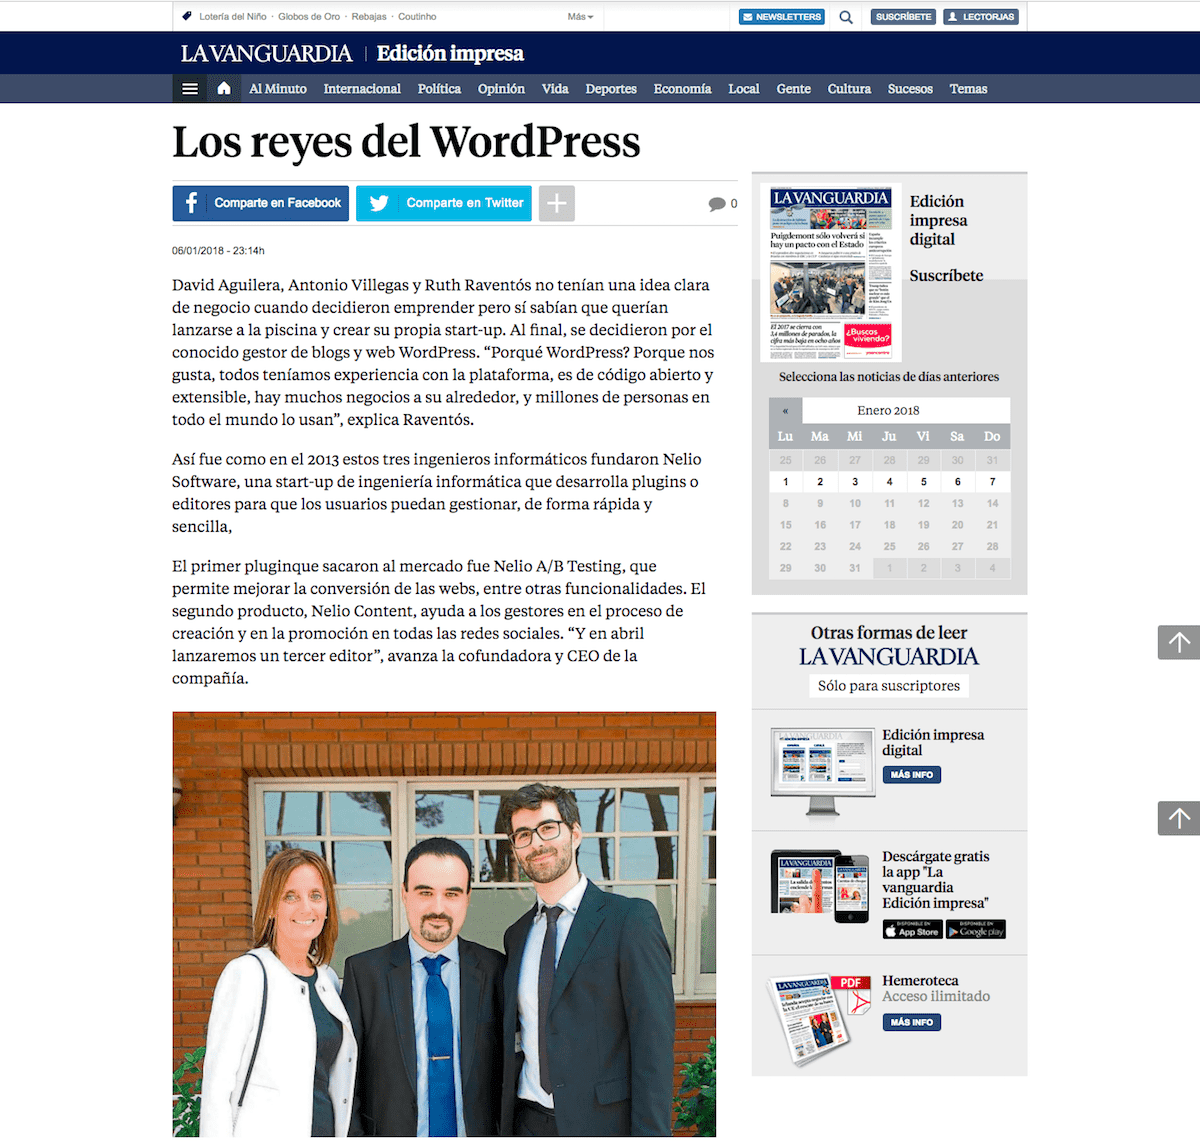 Los reyes del WordPress on La Vanguardia